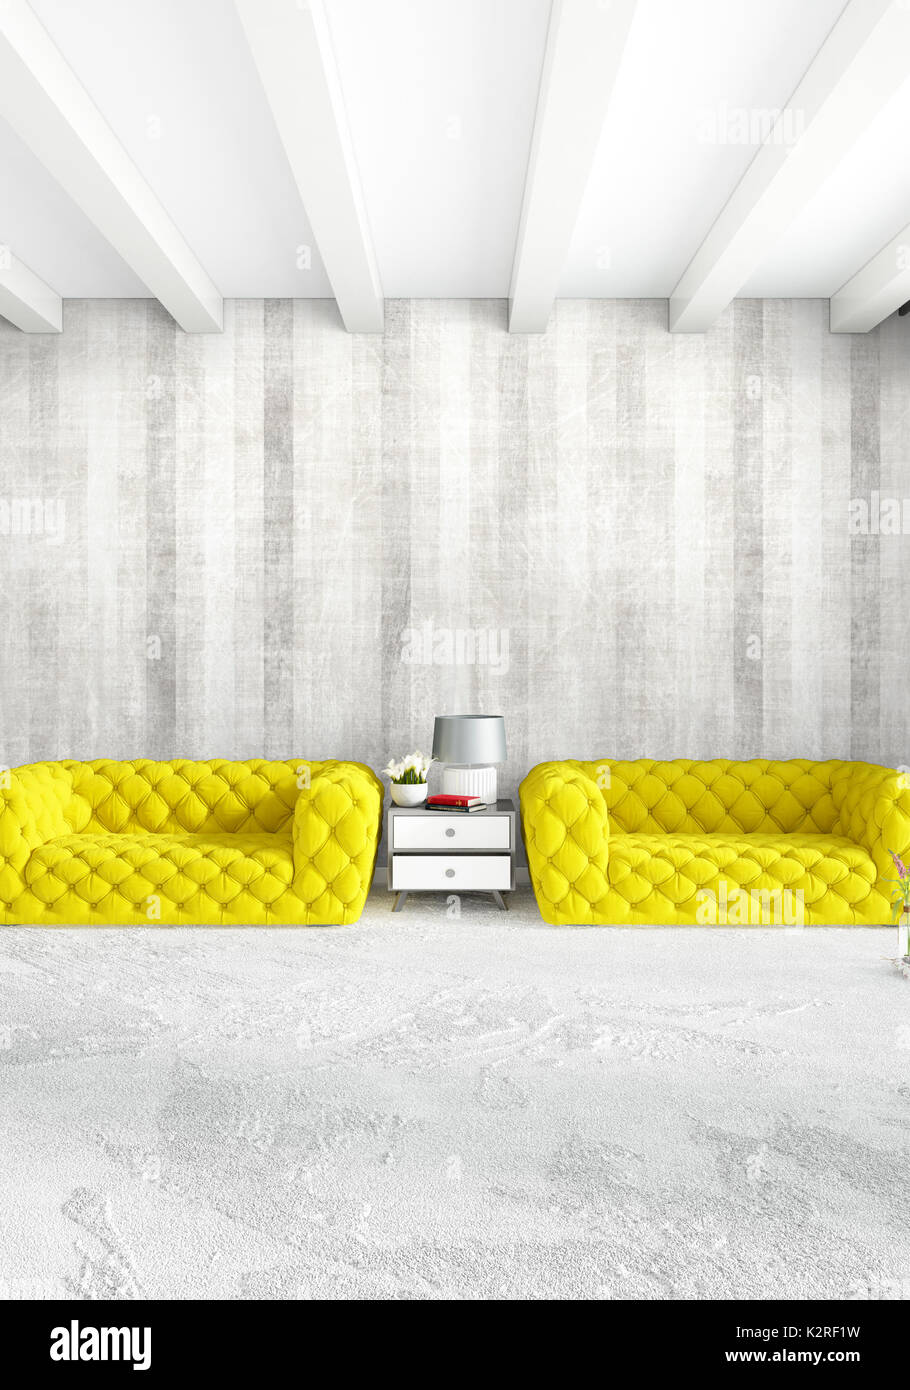 Modern loft interior bedroom or living room with eclectic wall with space 3d rendering